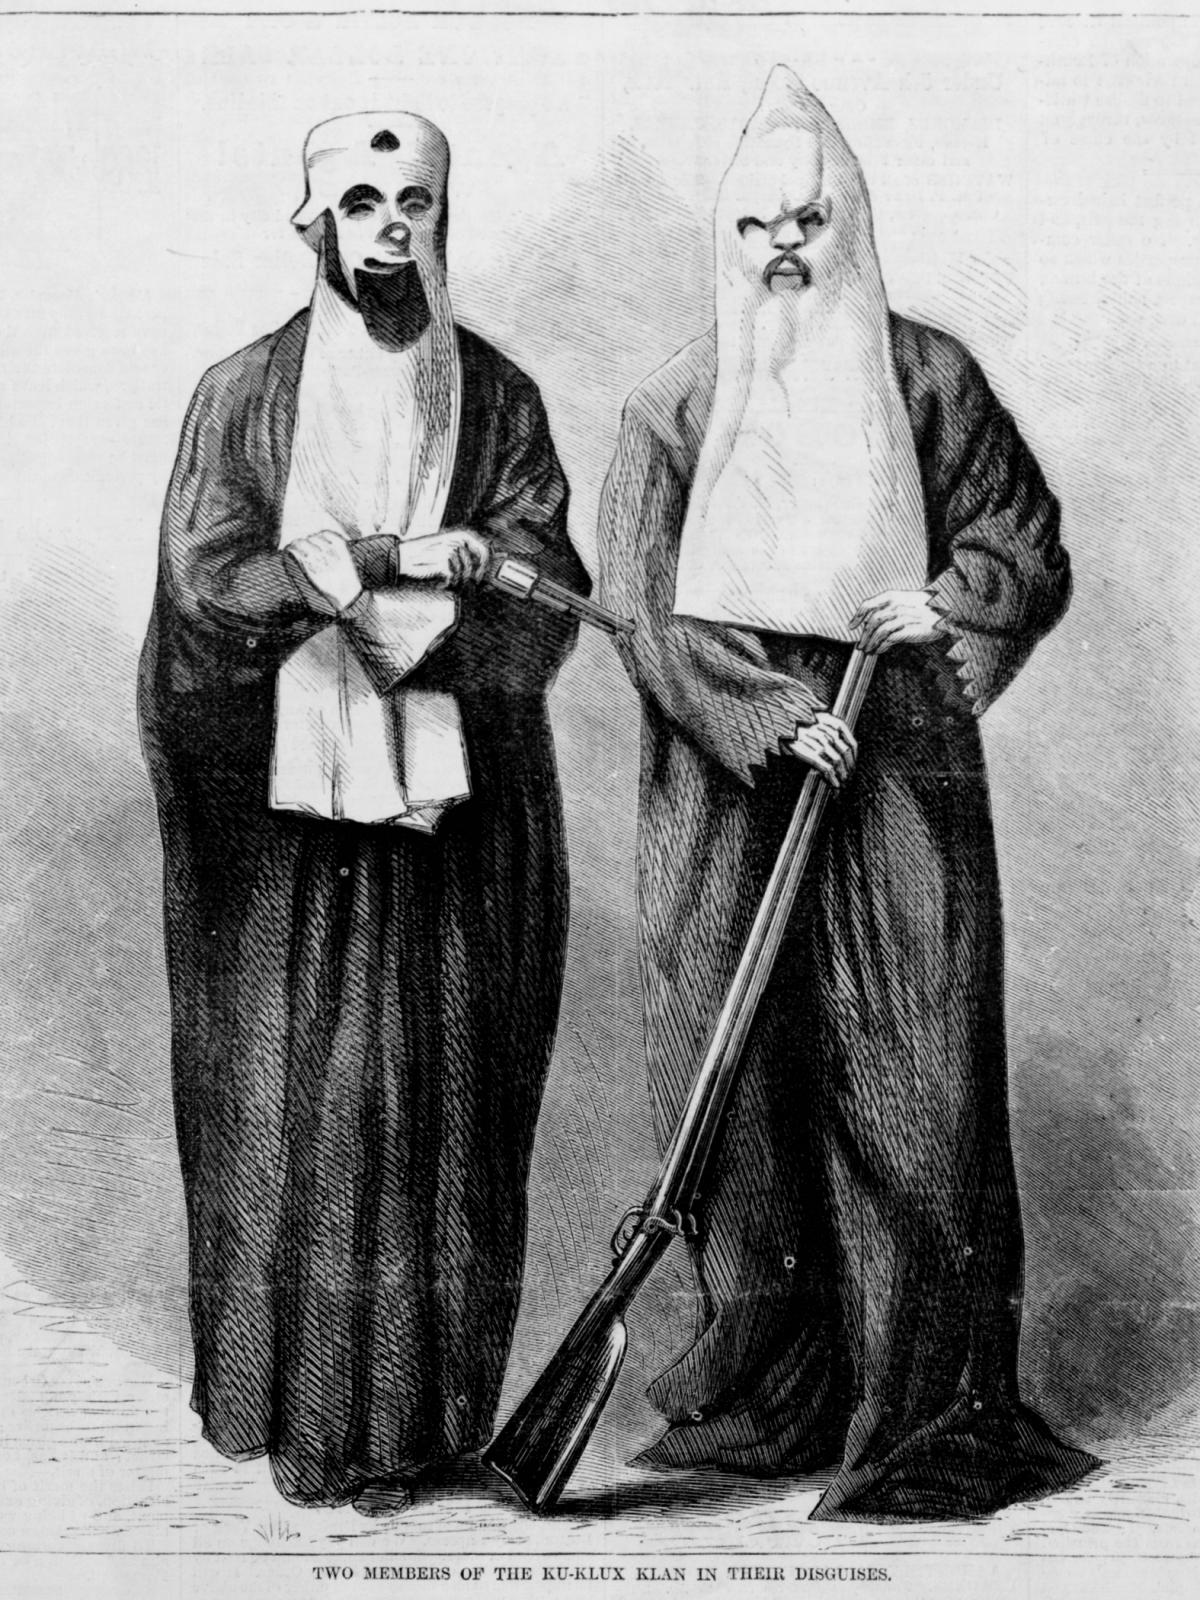 This drawing from 1868 depicts early members of the Ku Klux Klan. Historians have documented how the group used absurdity to mock its opponents and to try to mask the seriousness of the KKK's atrocities.